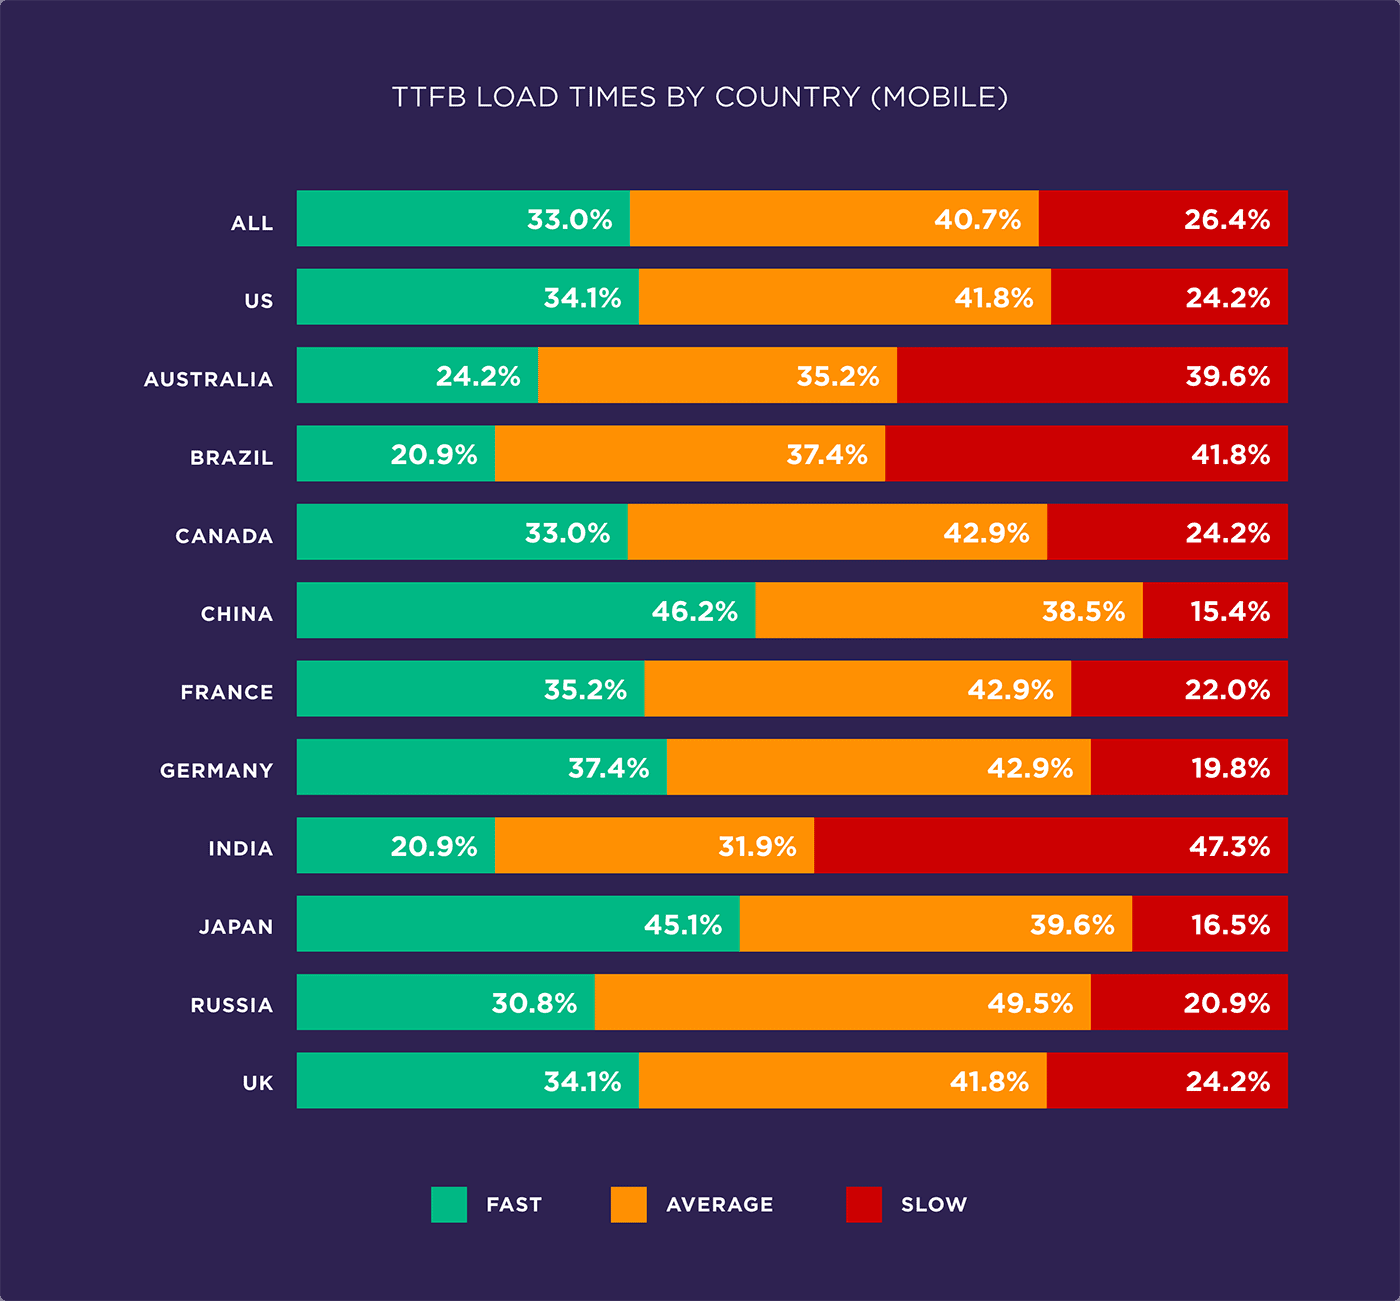 TTFB load times by country (Mobile)